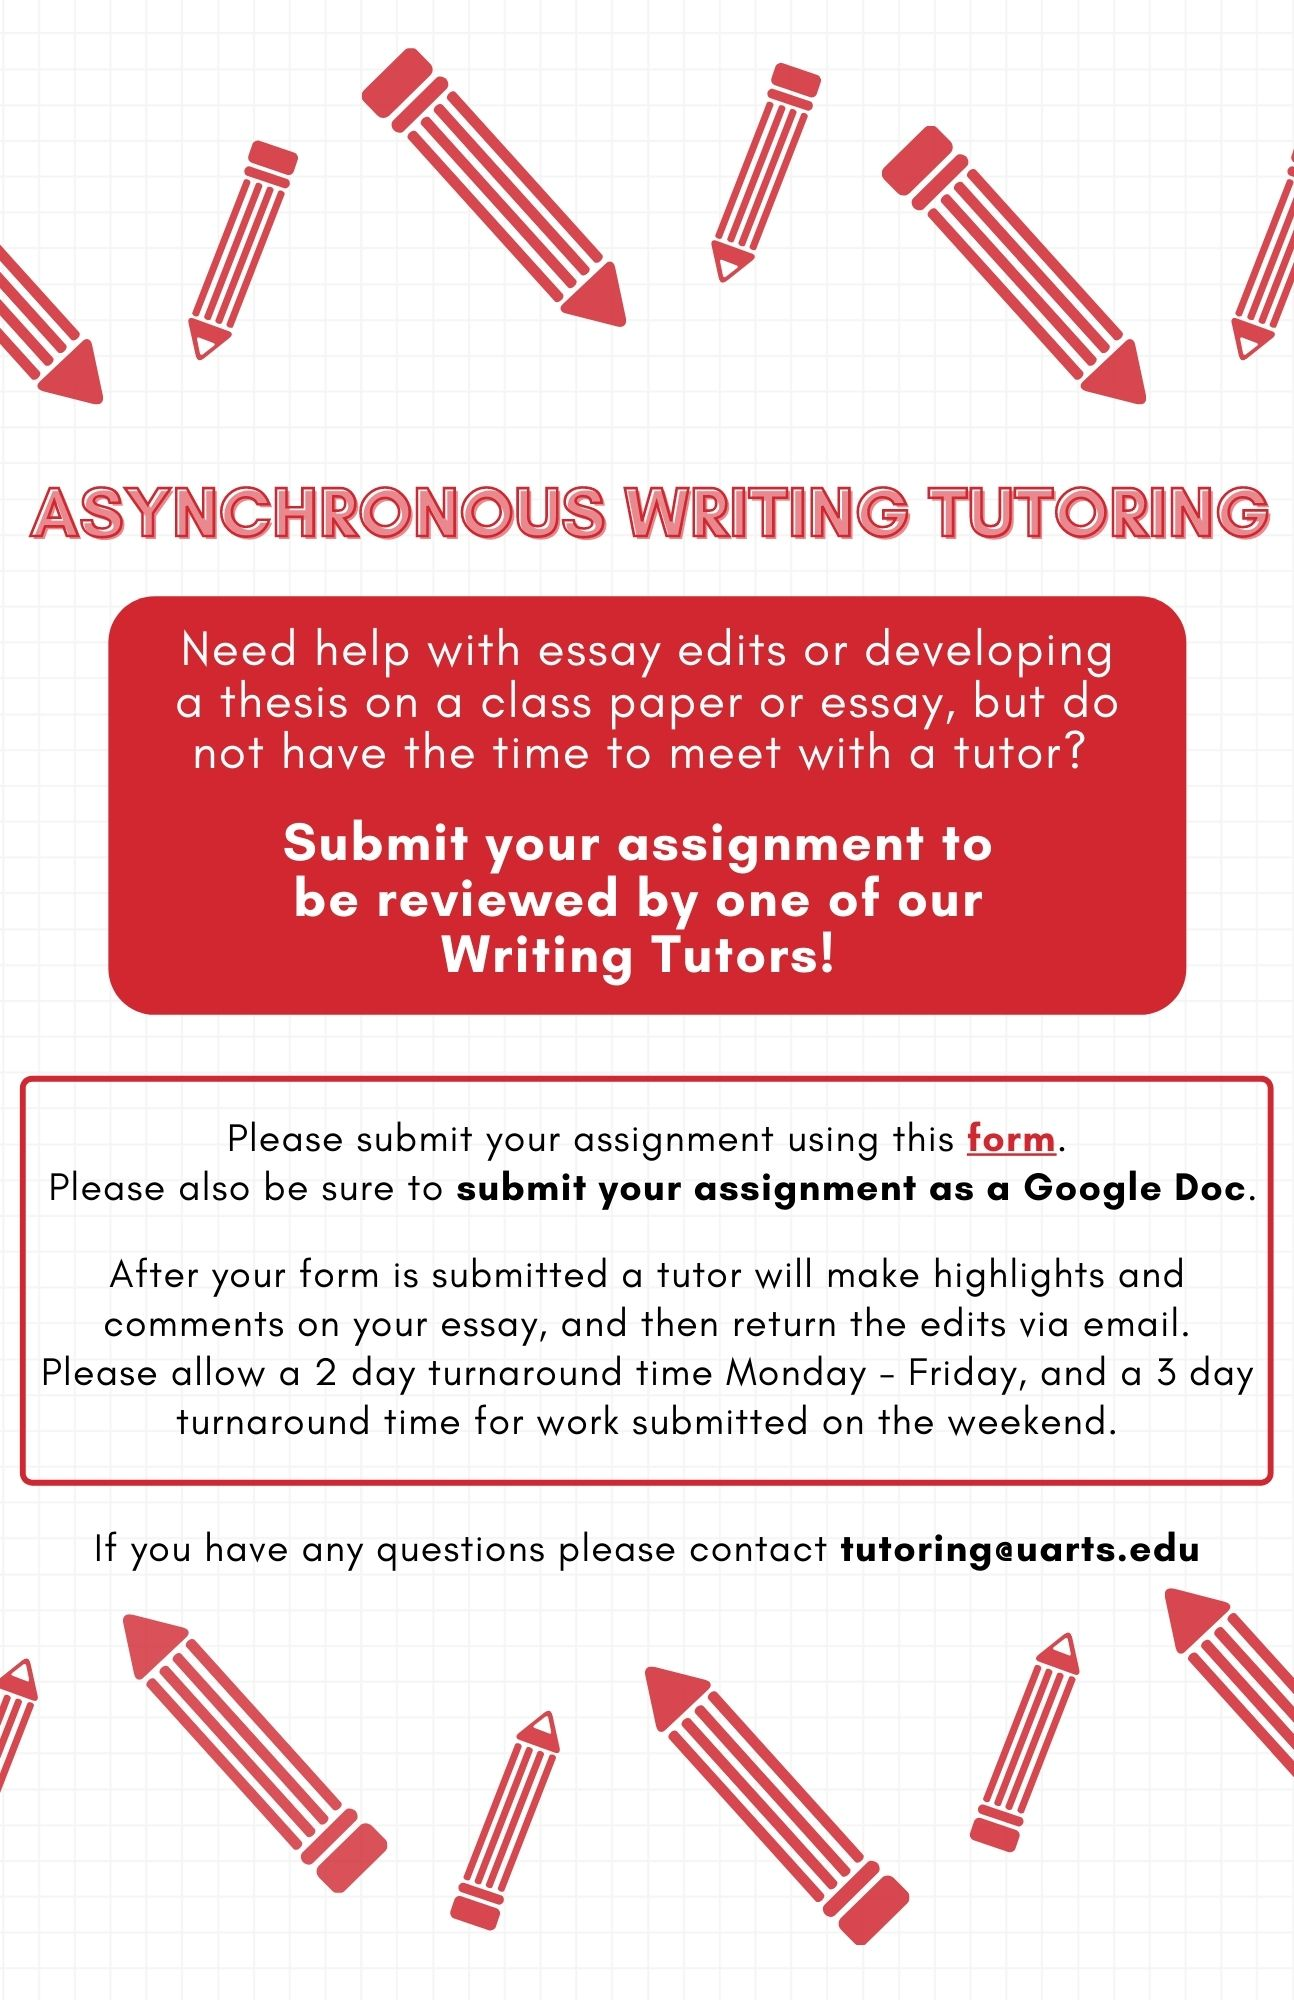 Async Writing Tutoring